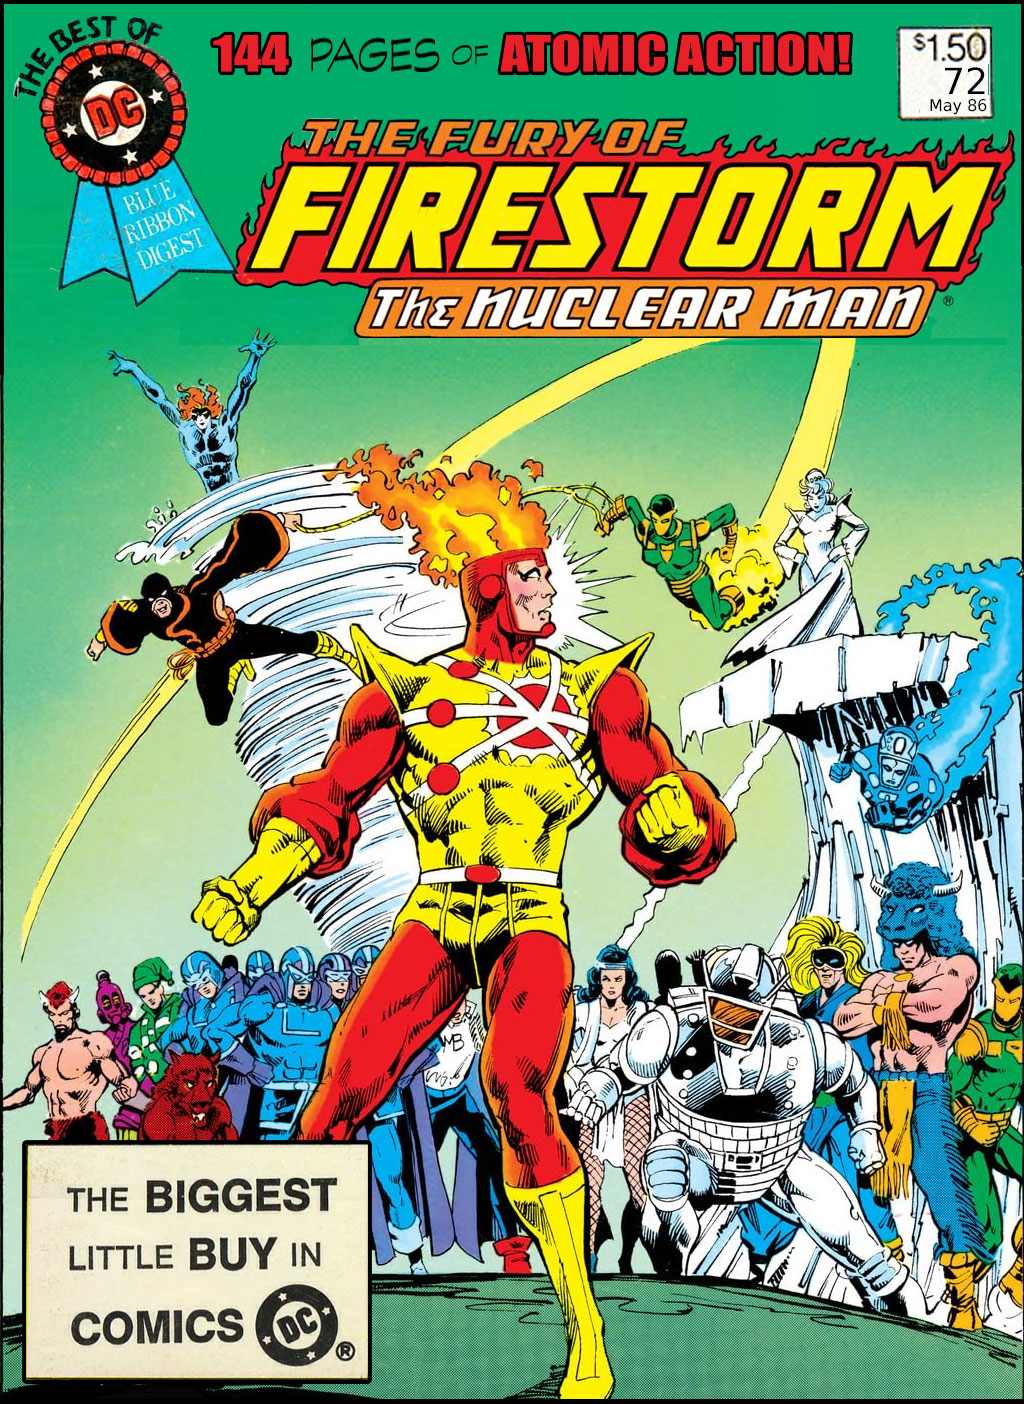 Best of DC Digest #72 Firestorm - from the Fire and Water Podcast